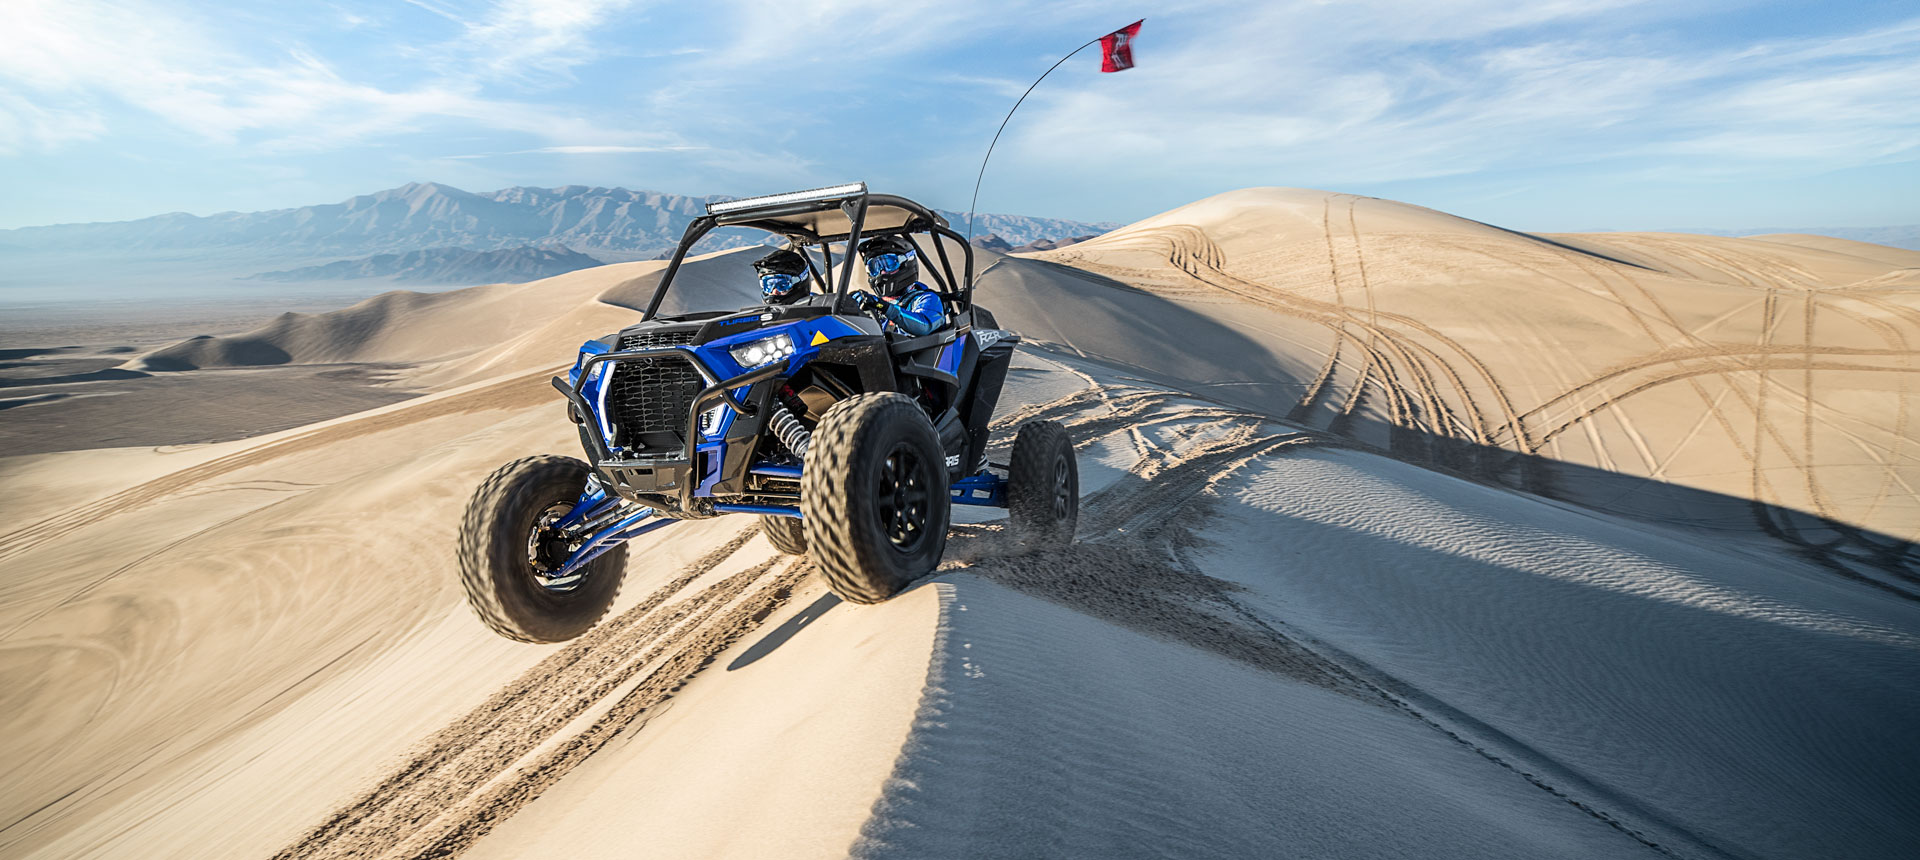 rzr-turbo-s-location-5-lg